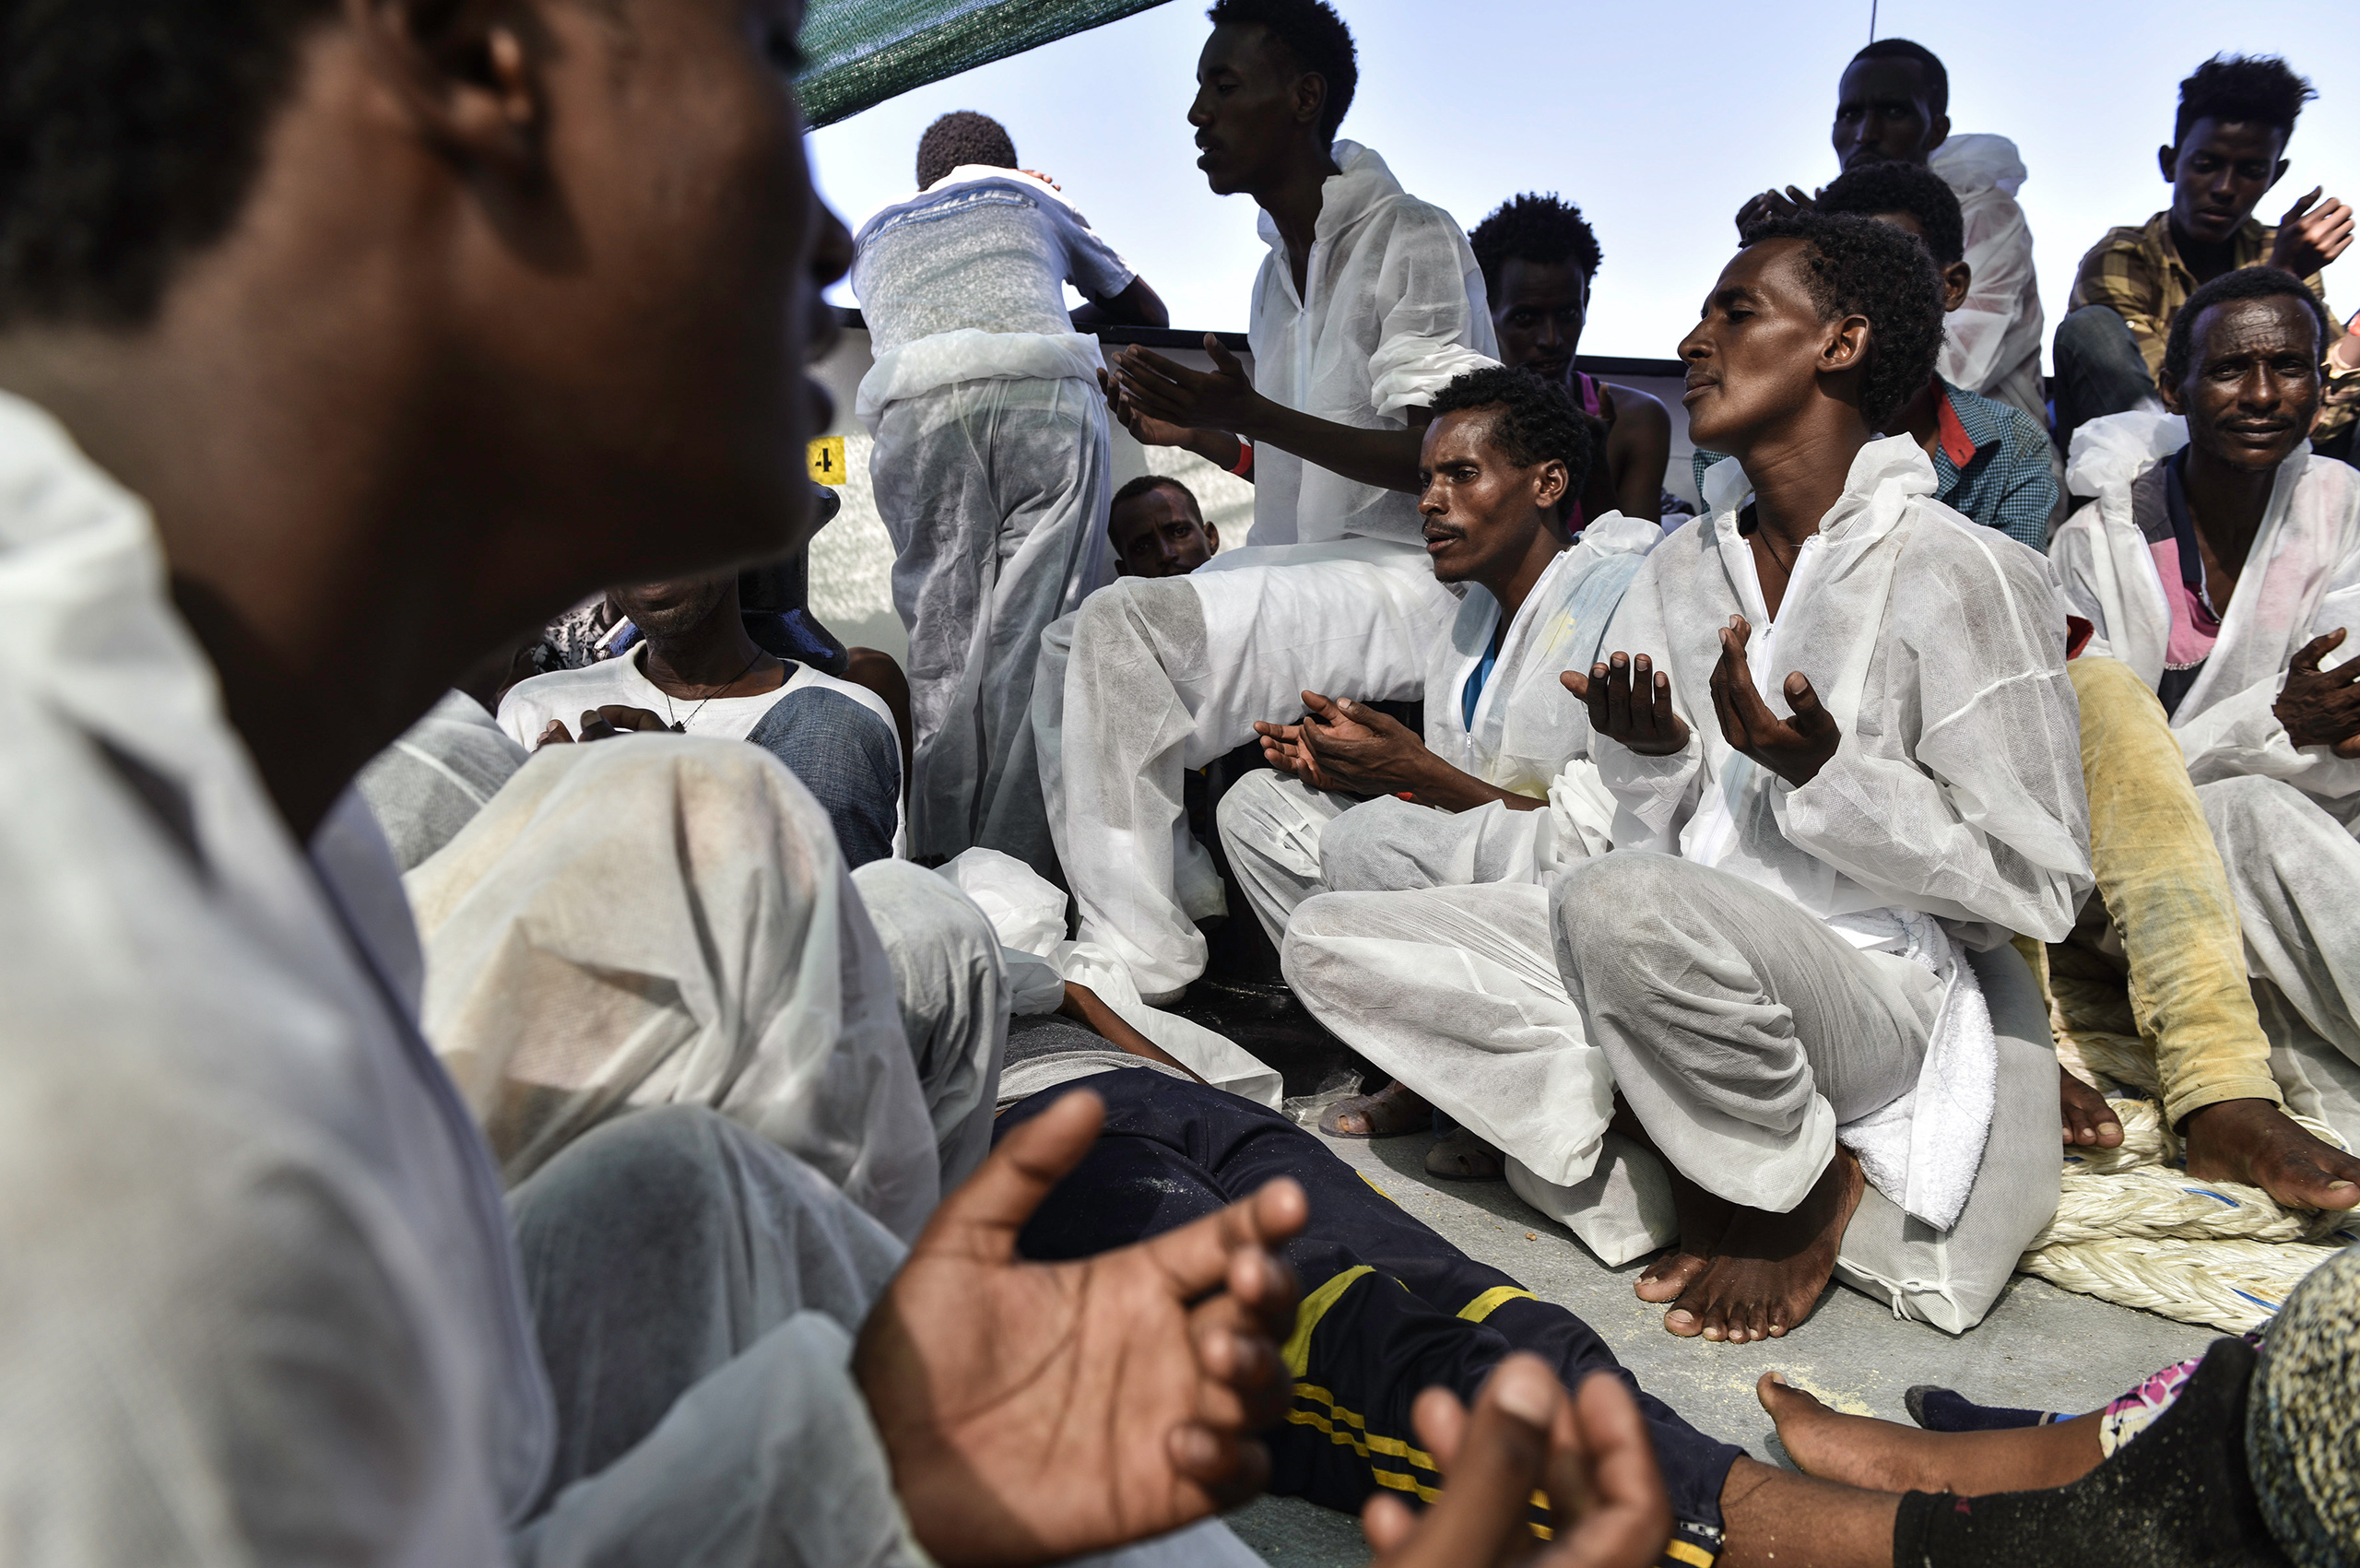 Eritrean Orthodox Christian men sing and pray after their rescue, Aug. 21, 2016.